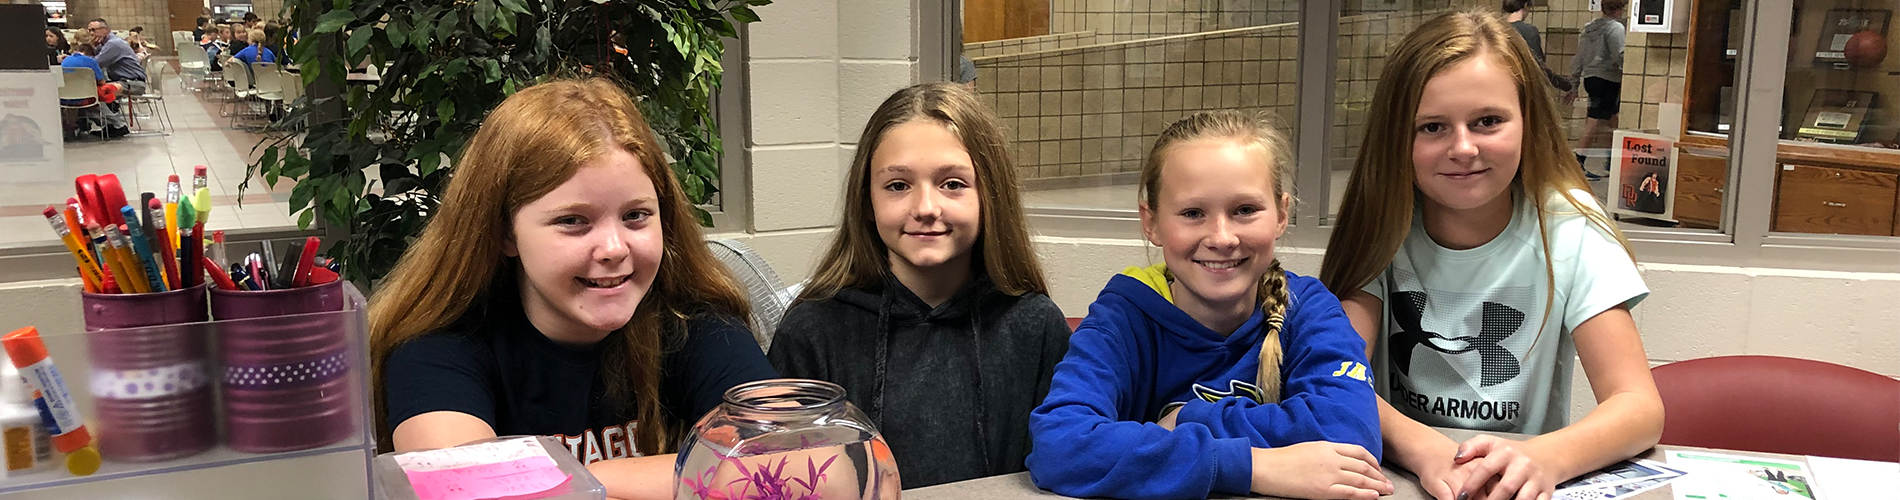 Middle school students pose with the fishbowl in the office.